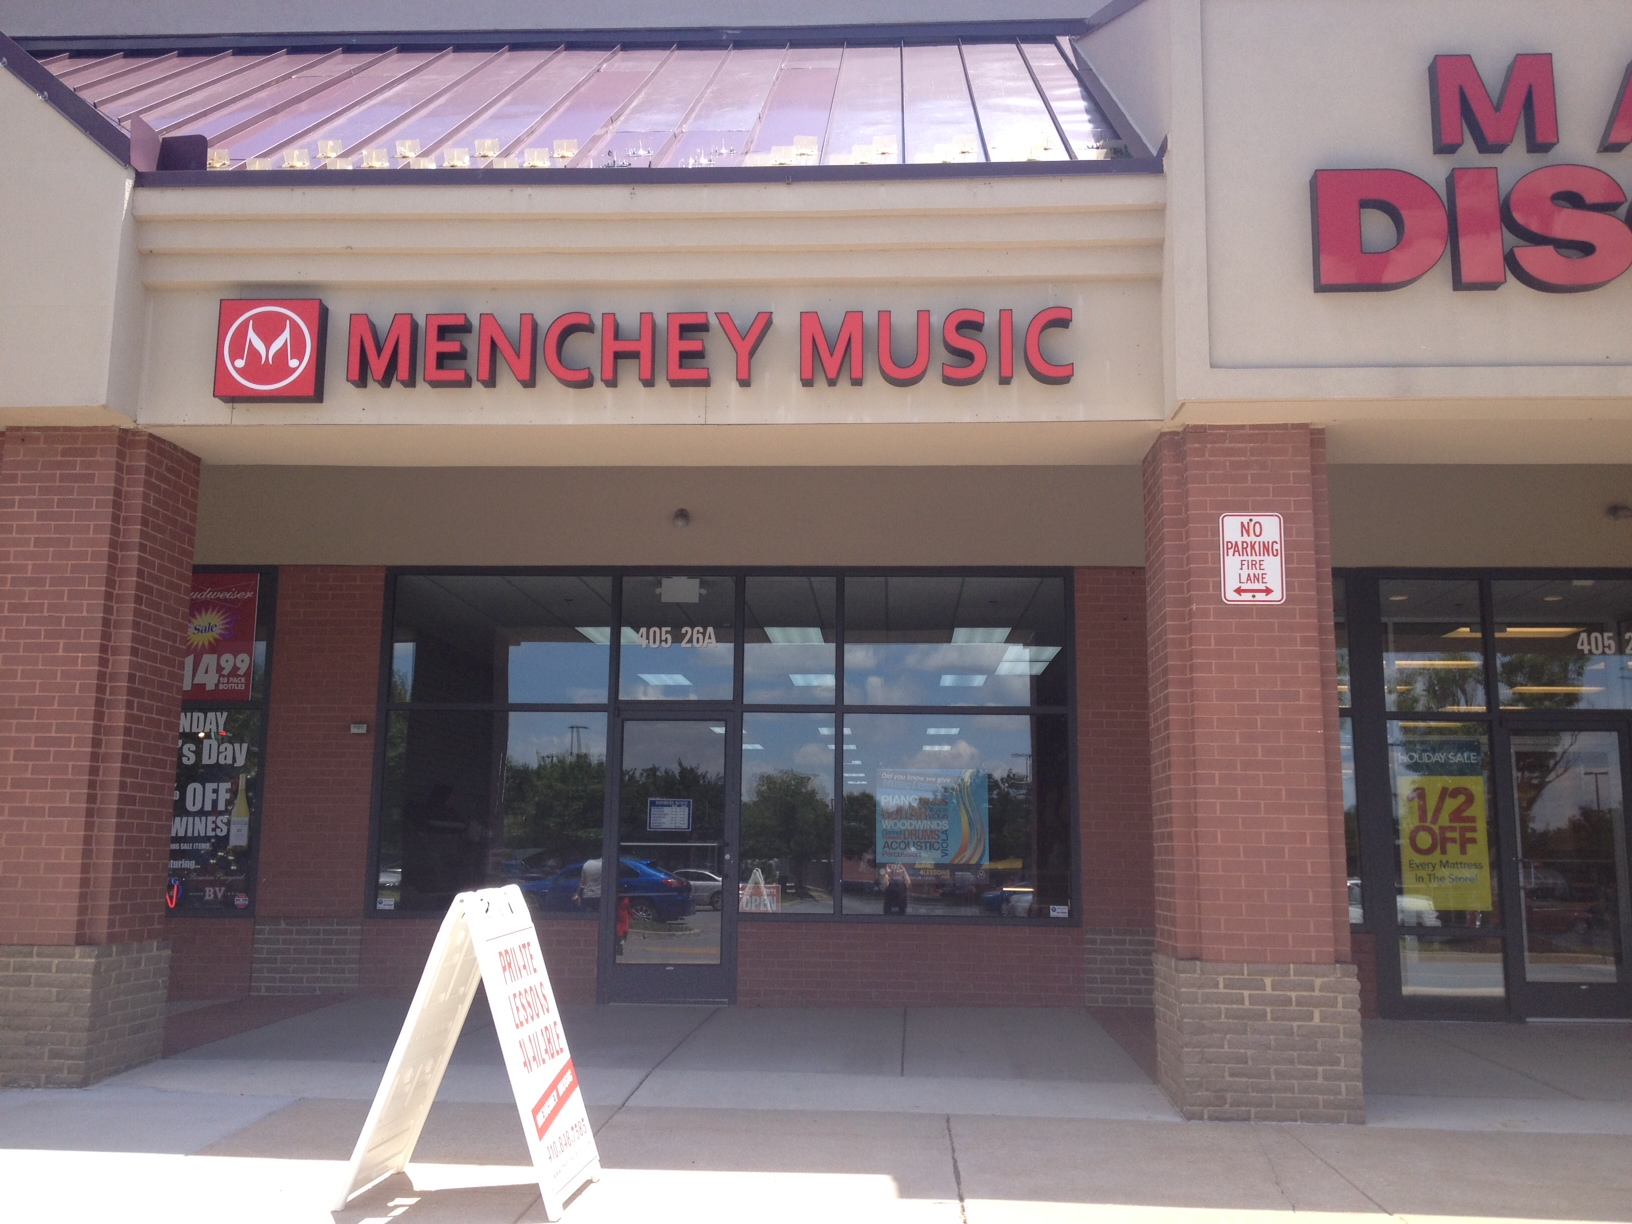 Menchey Music in Westminster, MD